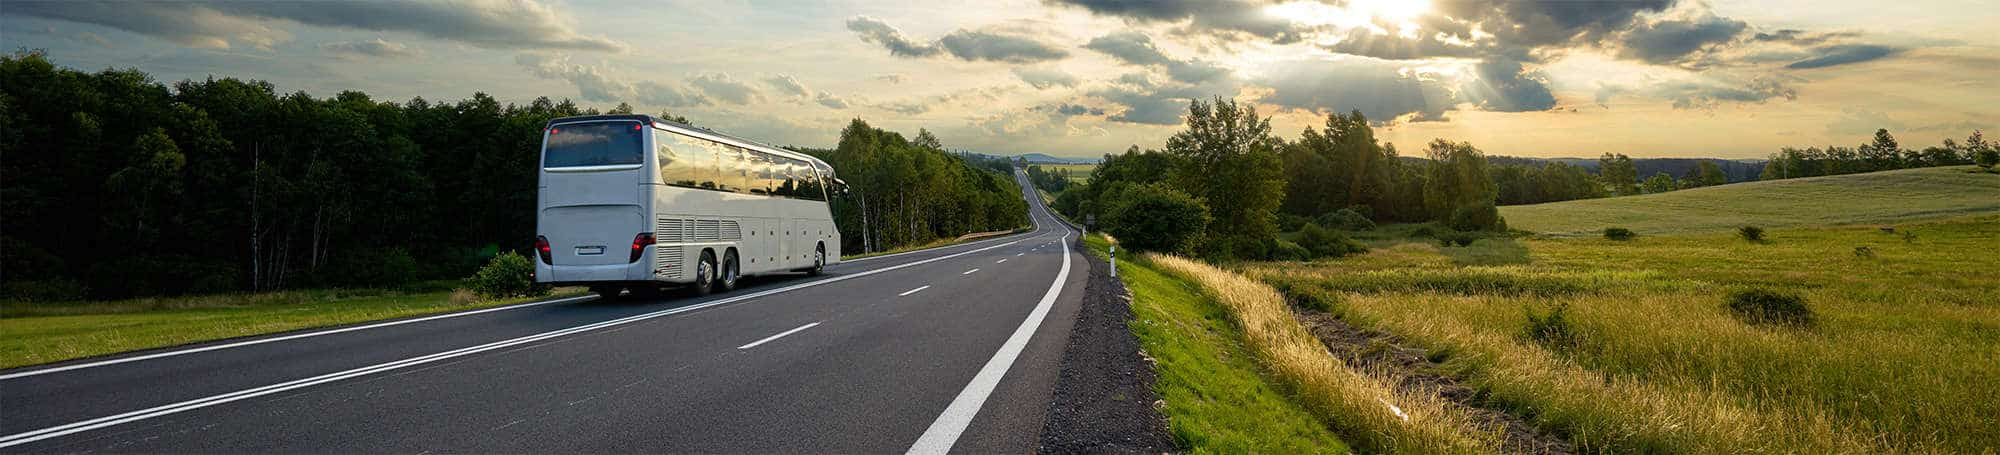 UK Minibus Travel And Coach Hire